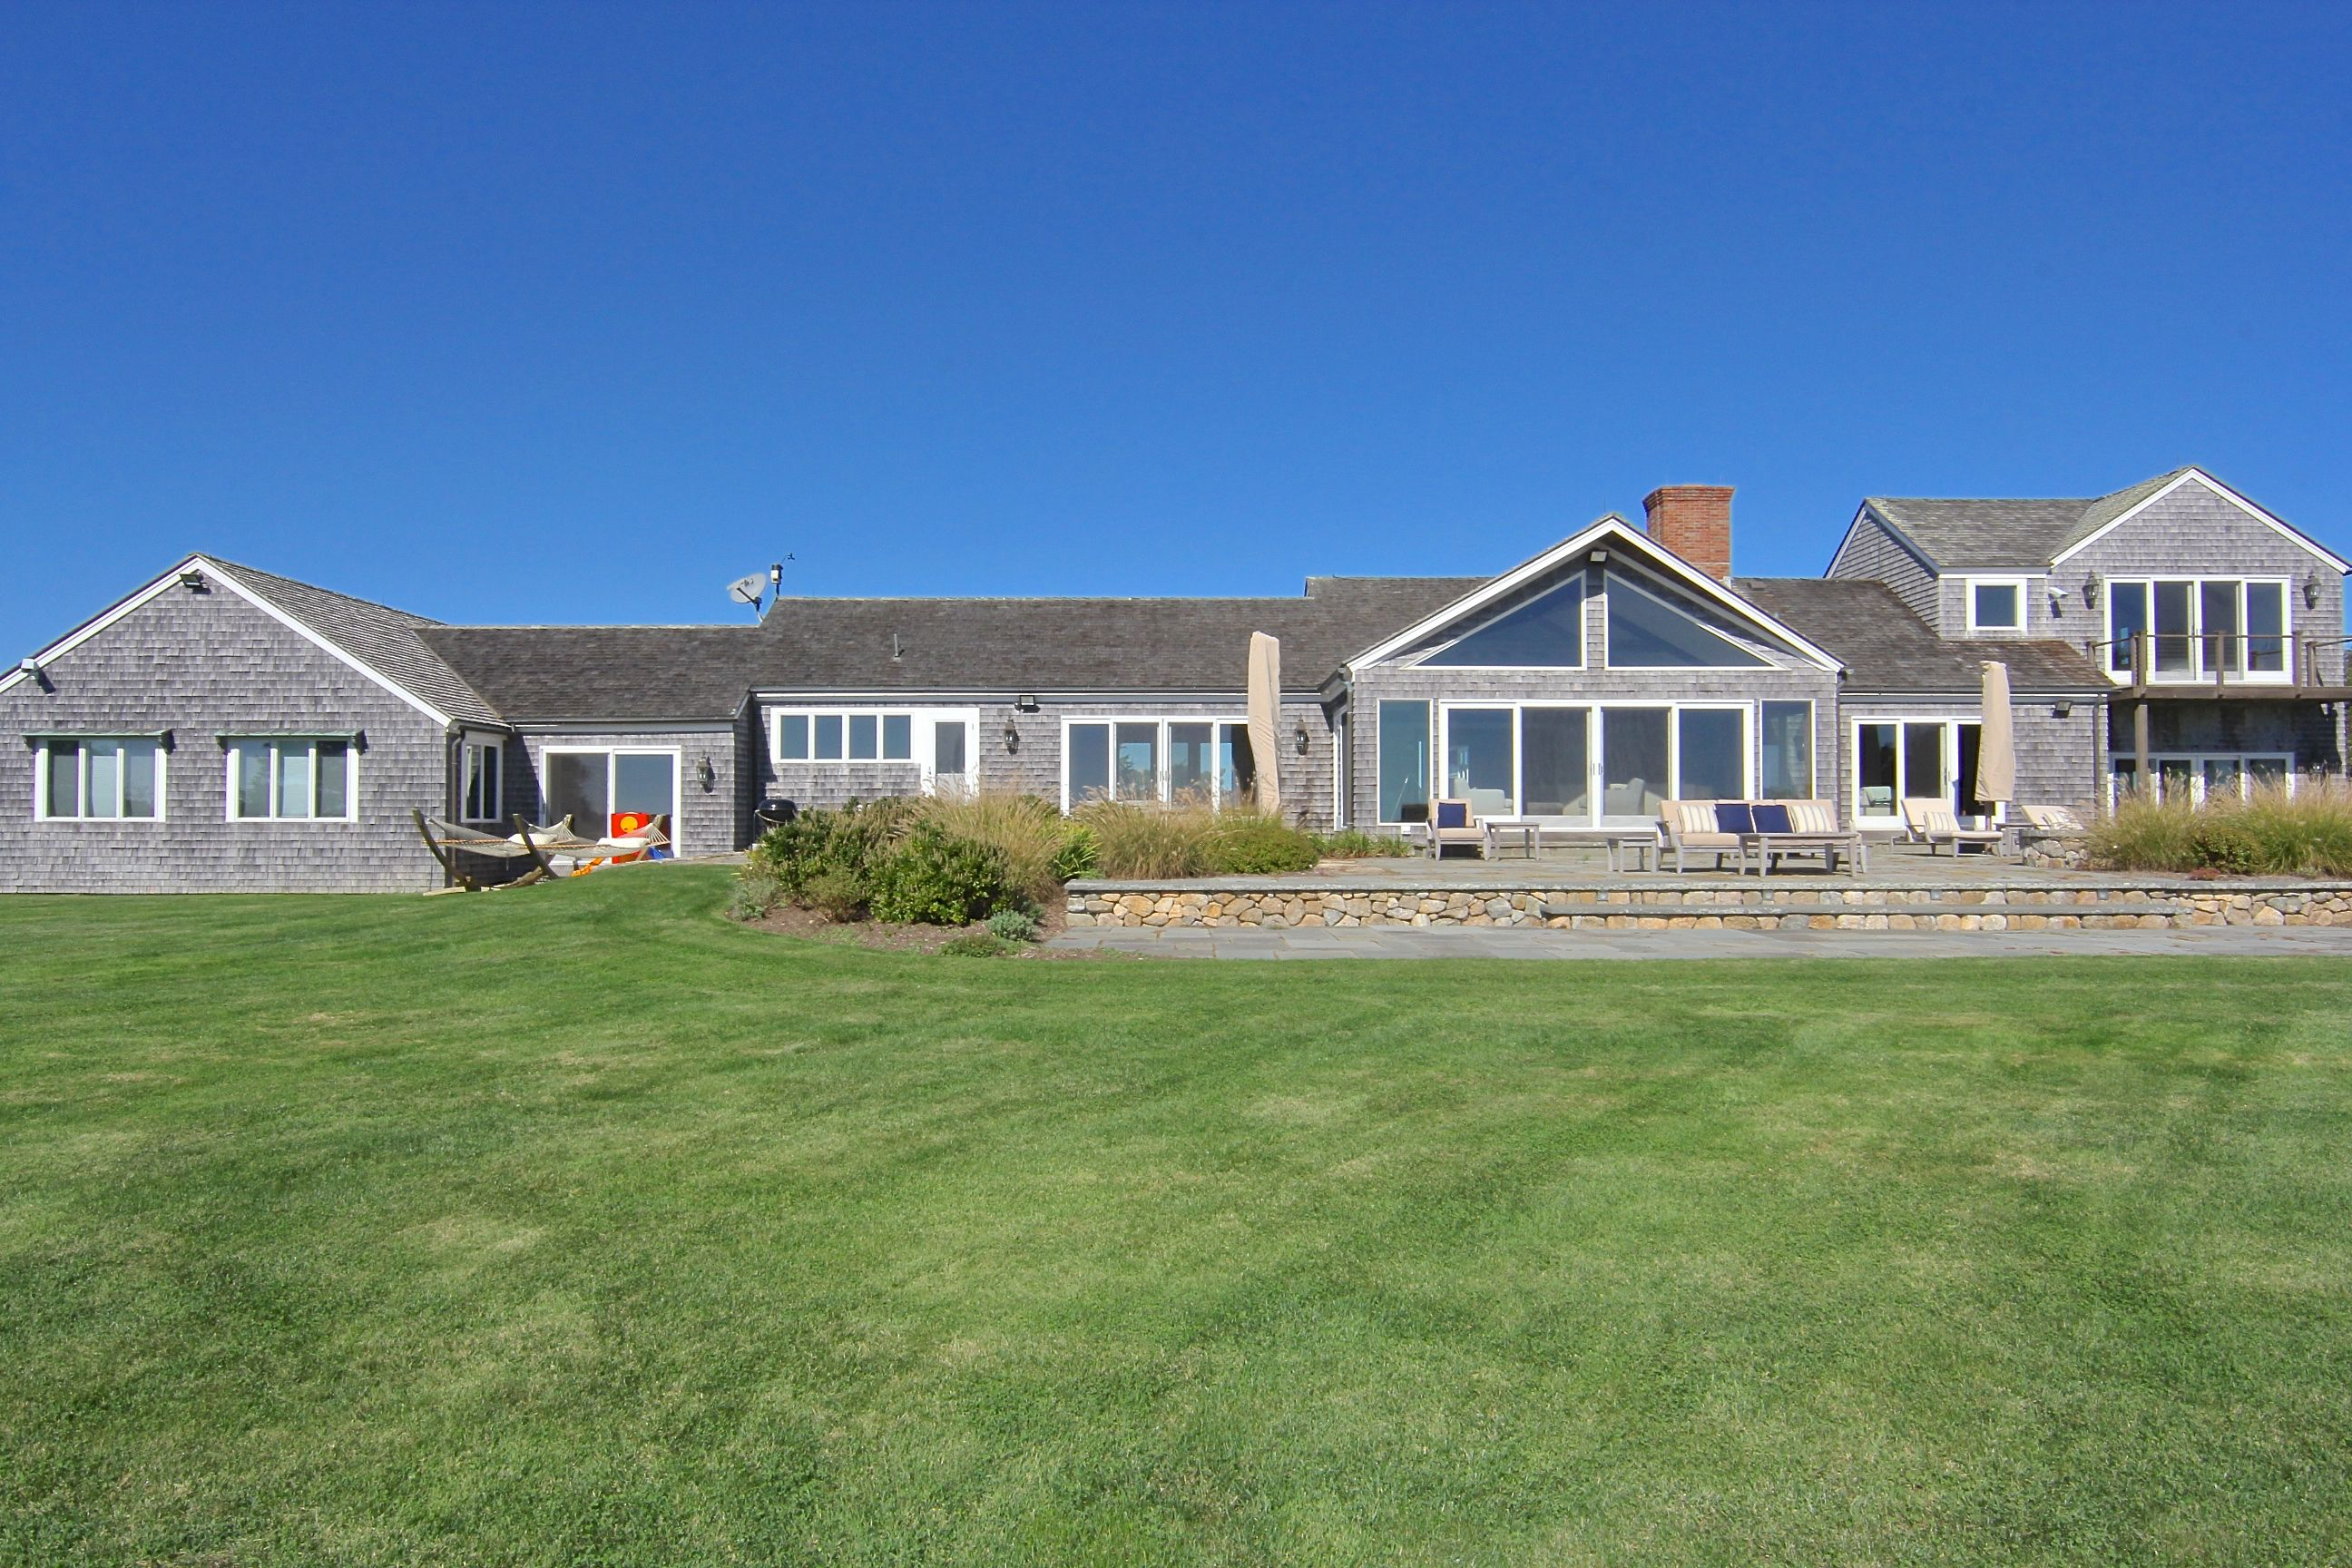 Additional photo for property listing at 59 & 61 Butlers Cove Road 59 & 61 59 61 Butlers Cove Edgartown, Massachusetts,02539 Amerika Birleşik Devletleri